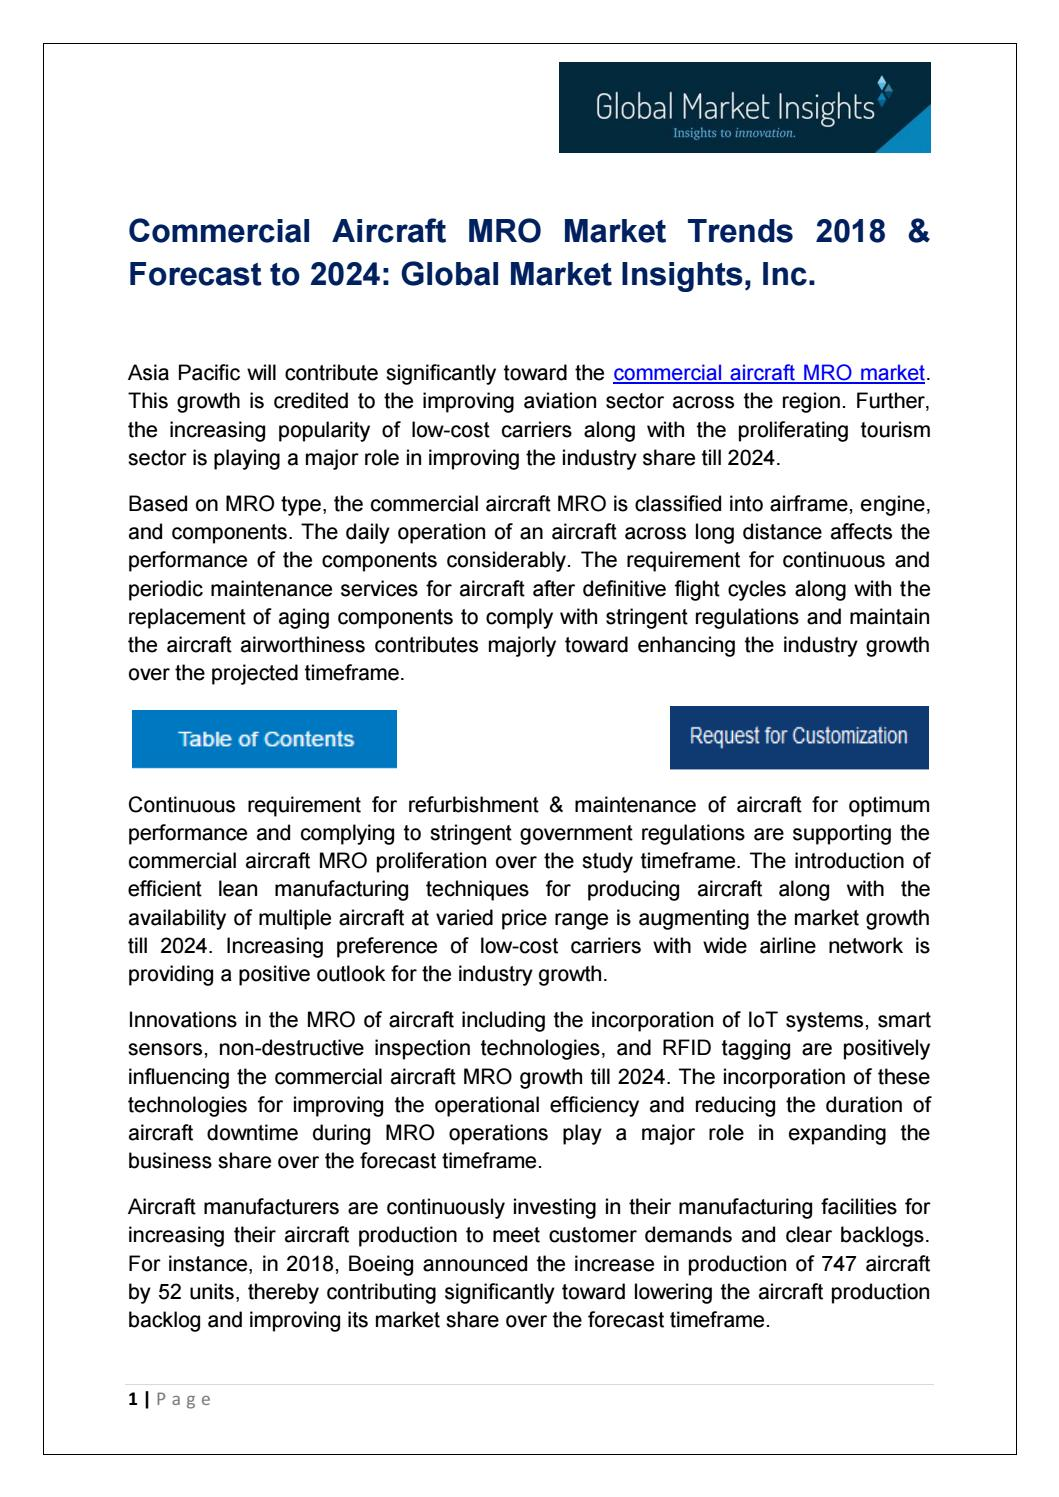 Commercial Aircraft MRO Market Analysis, Trends and Forecast